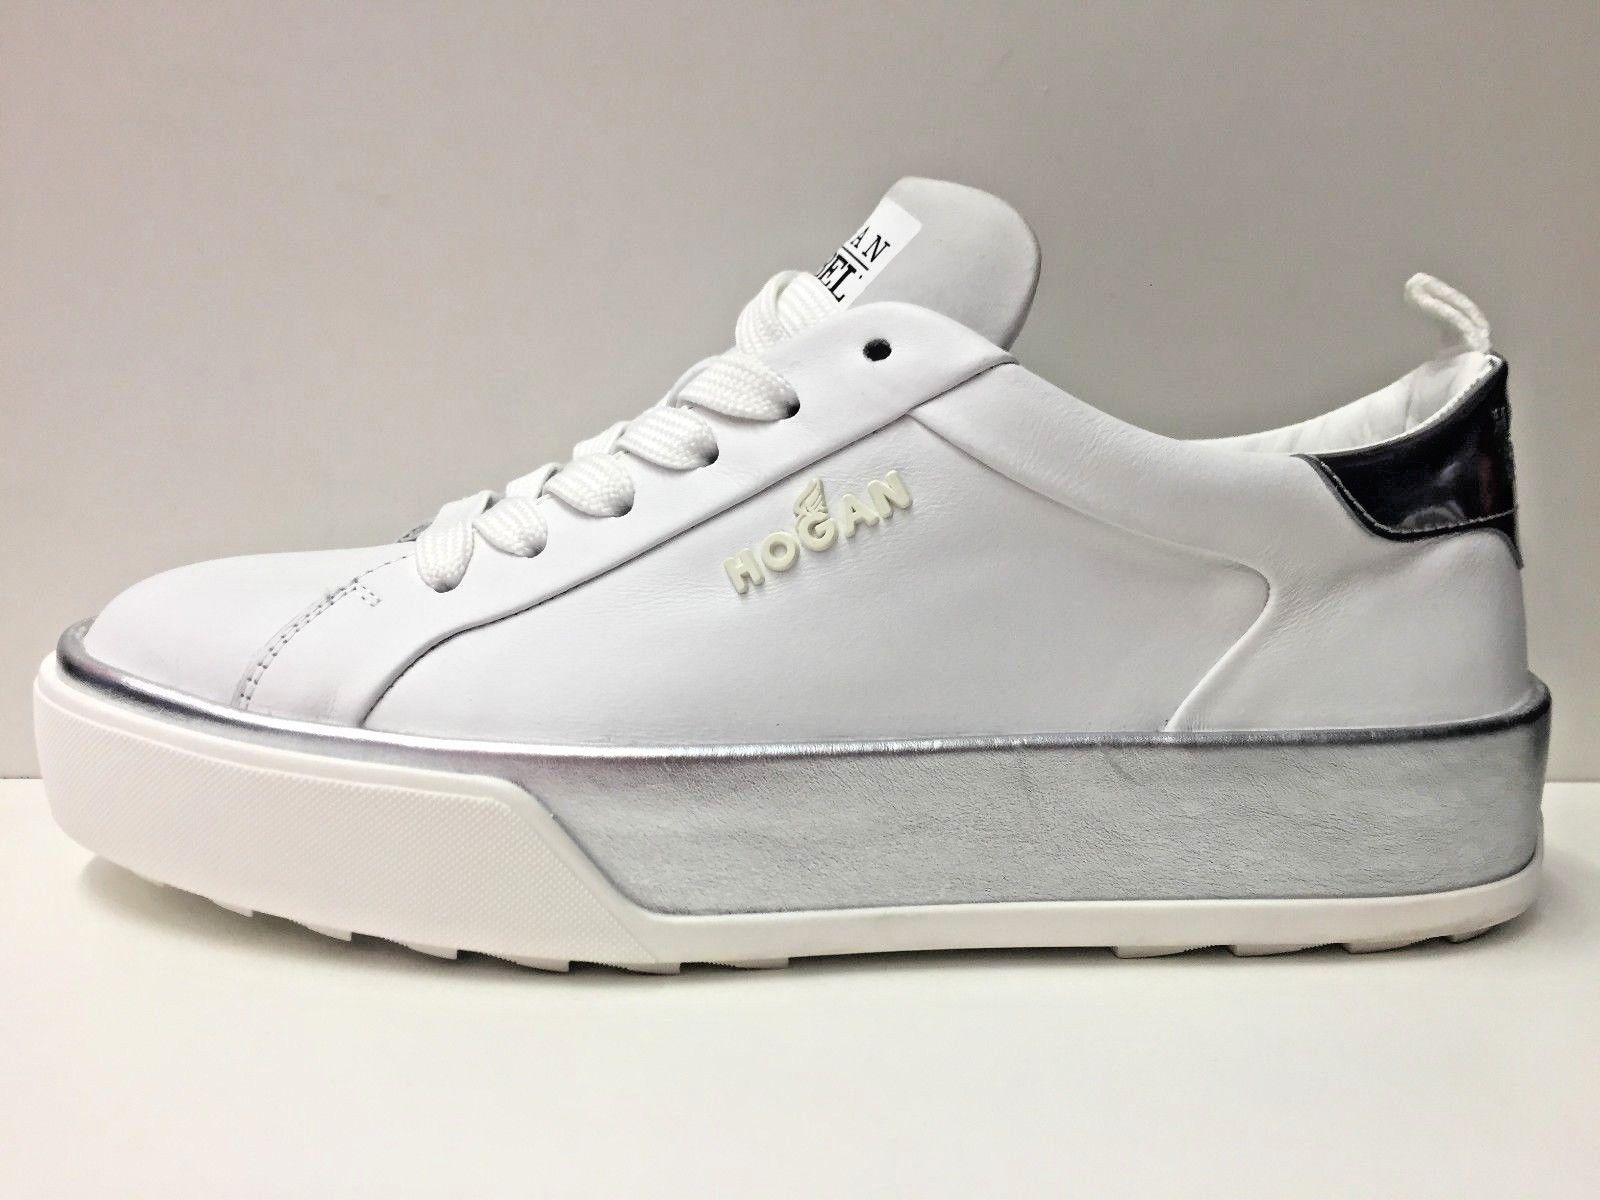 SCARPE SNEAKERS CASUAL DONNA HOGAN ORIGINAL R320 HXW3200X630GG PELLE P/E NEW